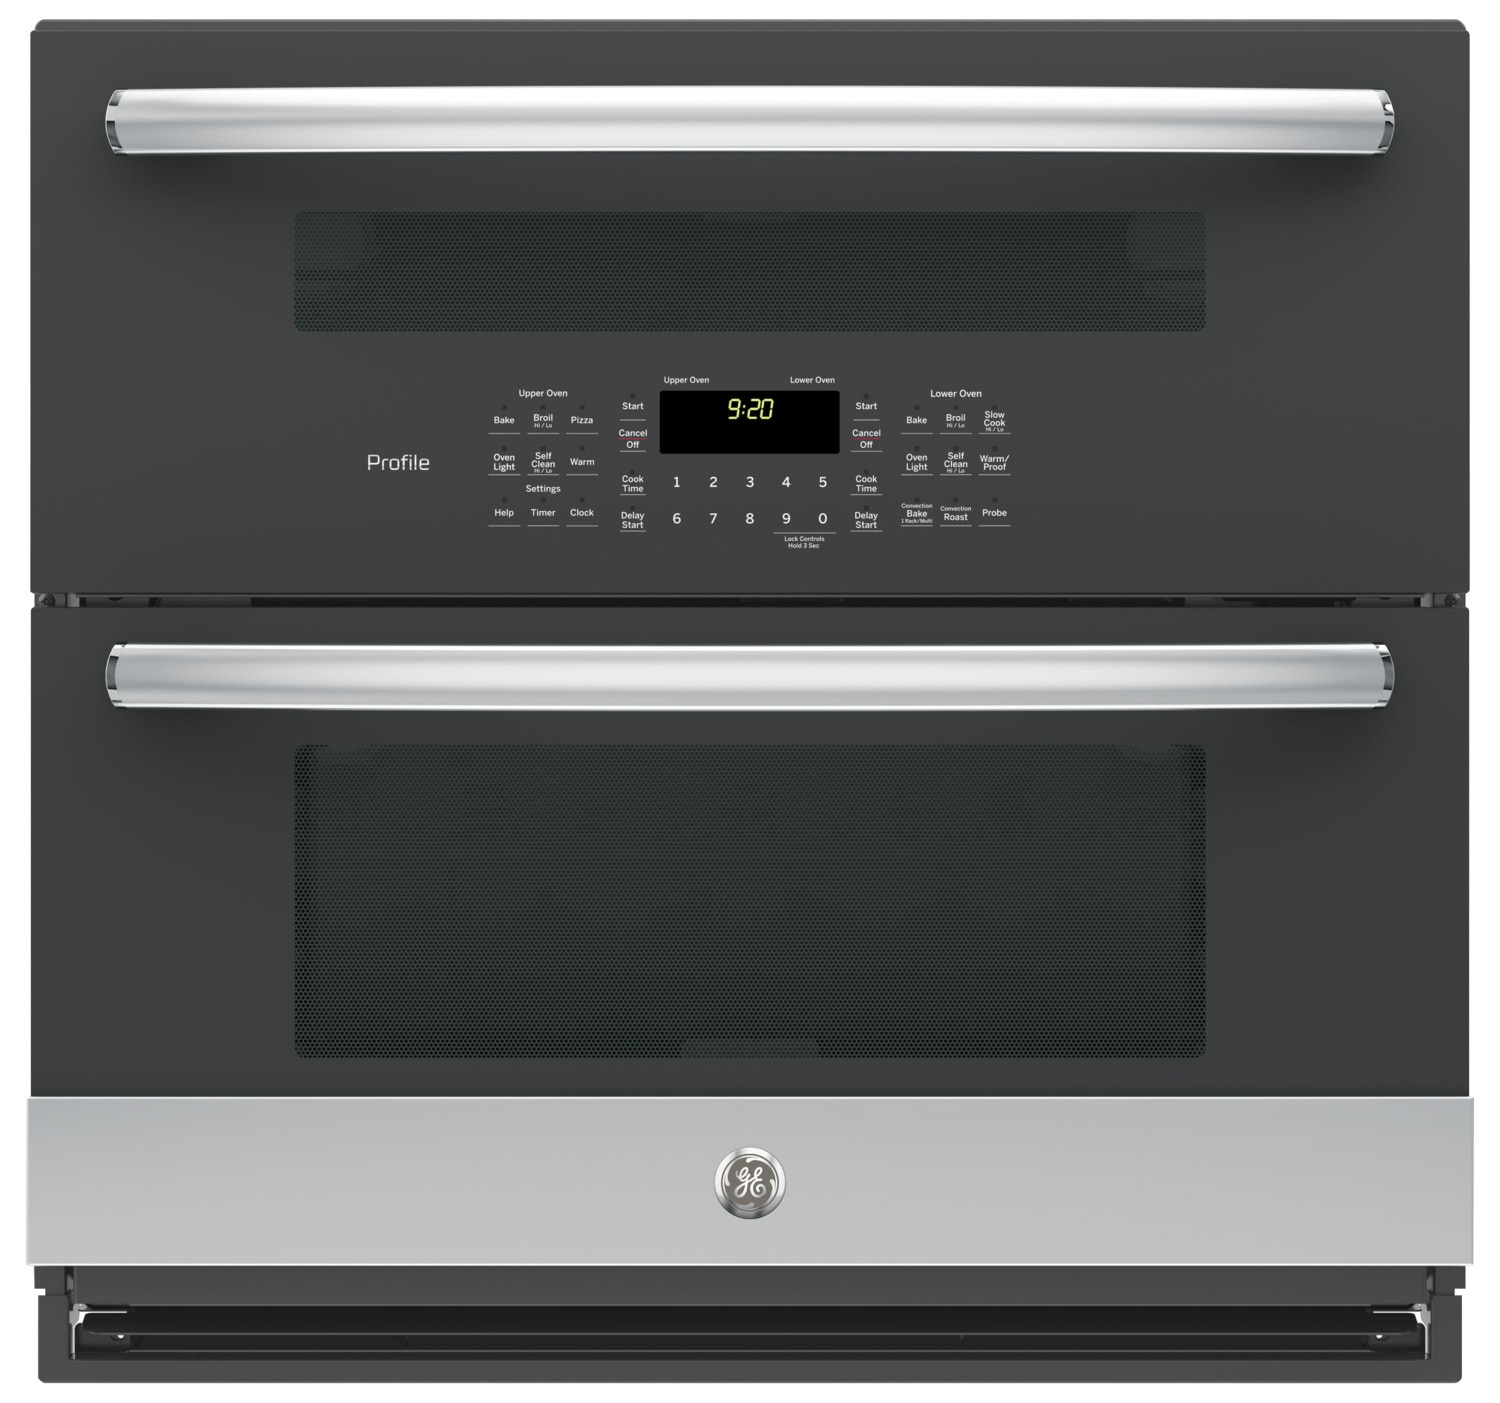 GE Profile Series 5.0 Cu. Ft. Built-In Twin Flex Convection Wall Oven – PT9200SLSS